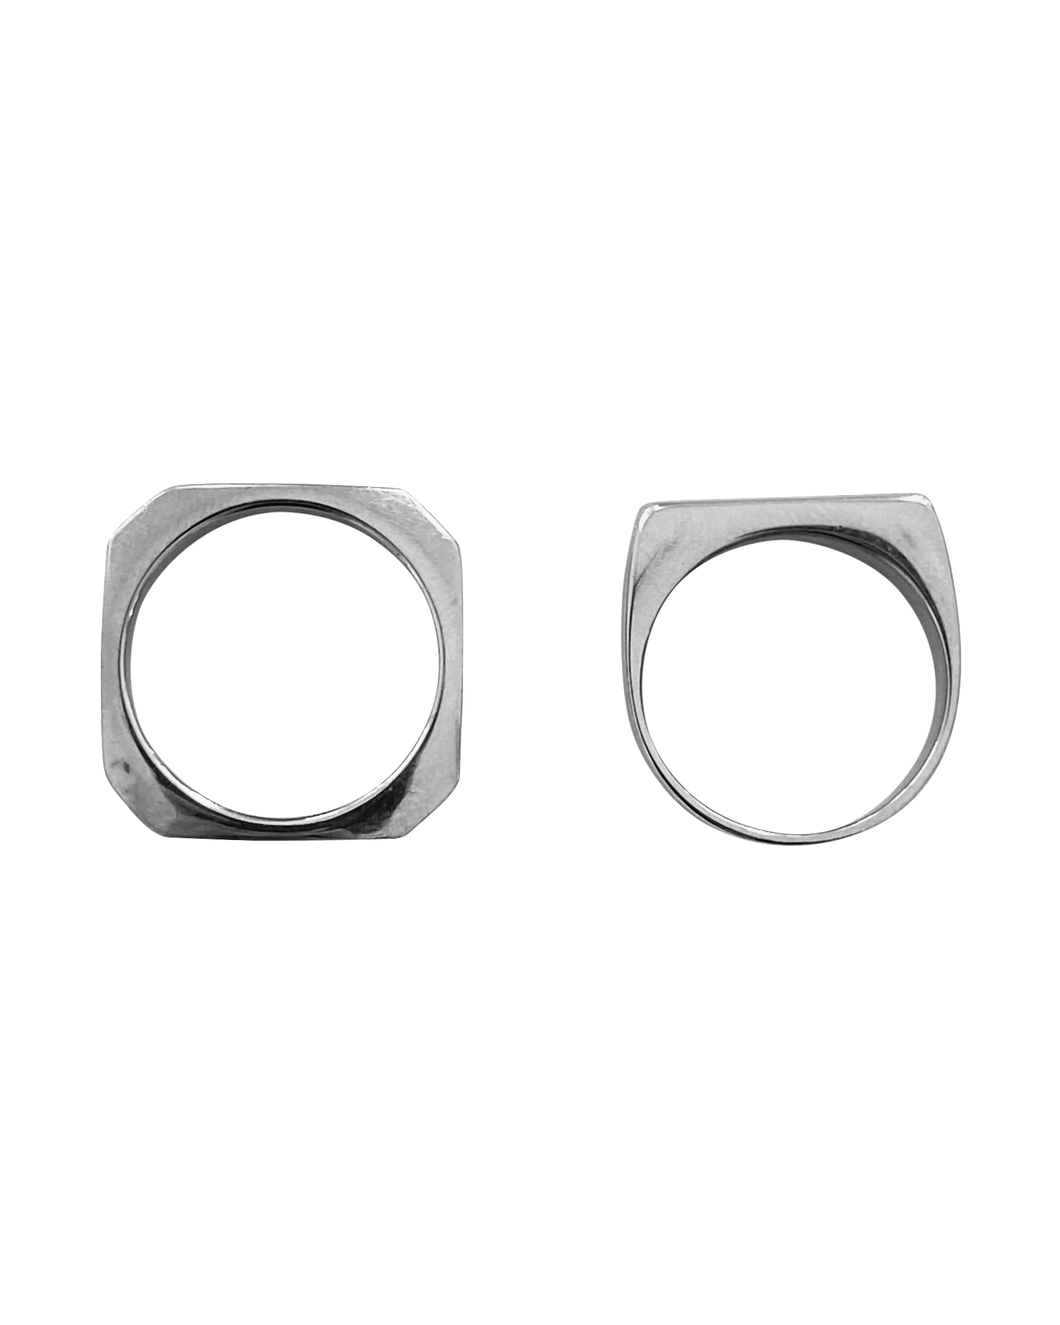 Hendrix Ring Stack - Set of 2 Silver